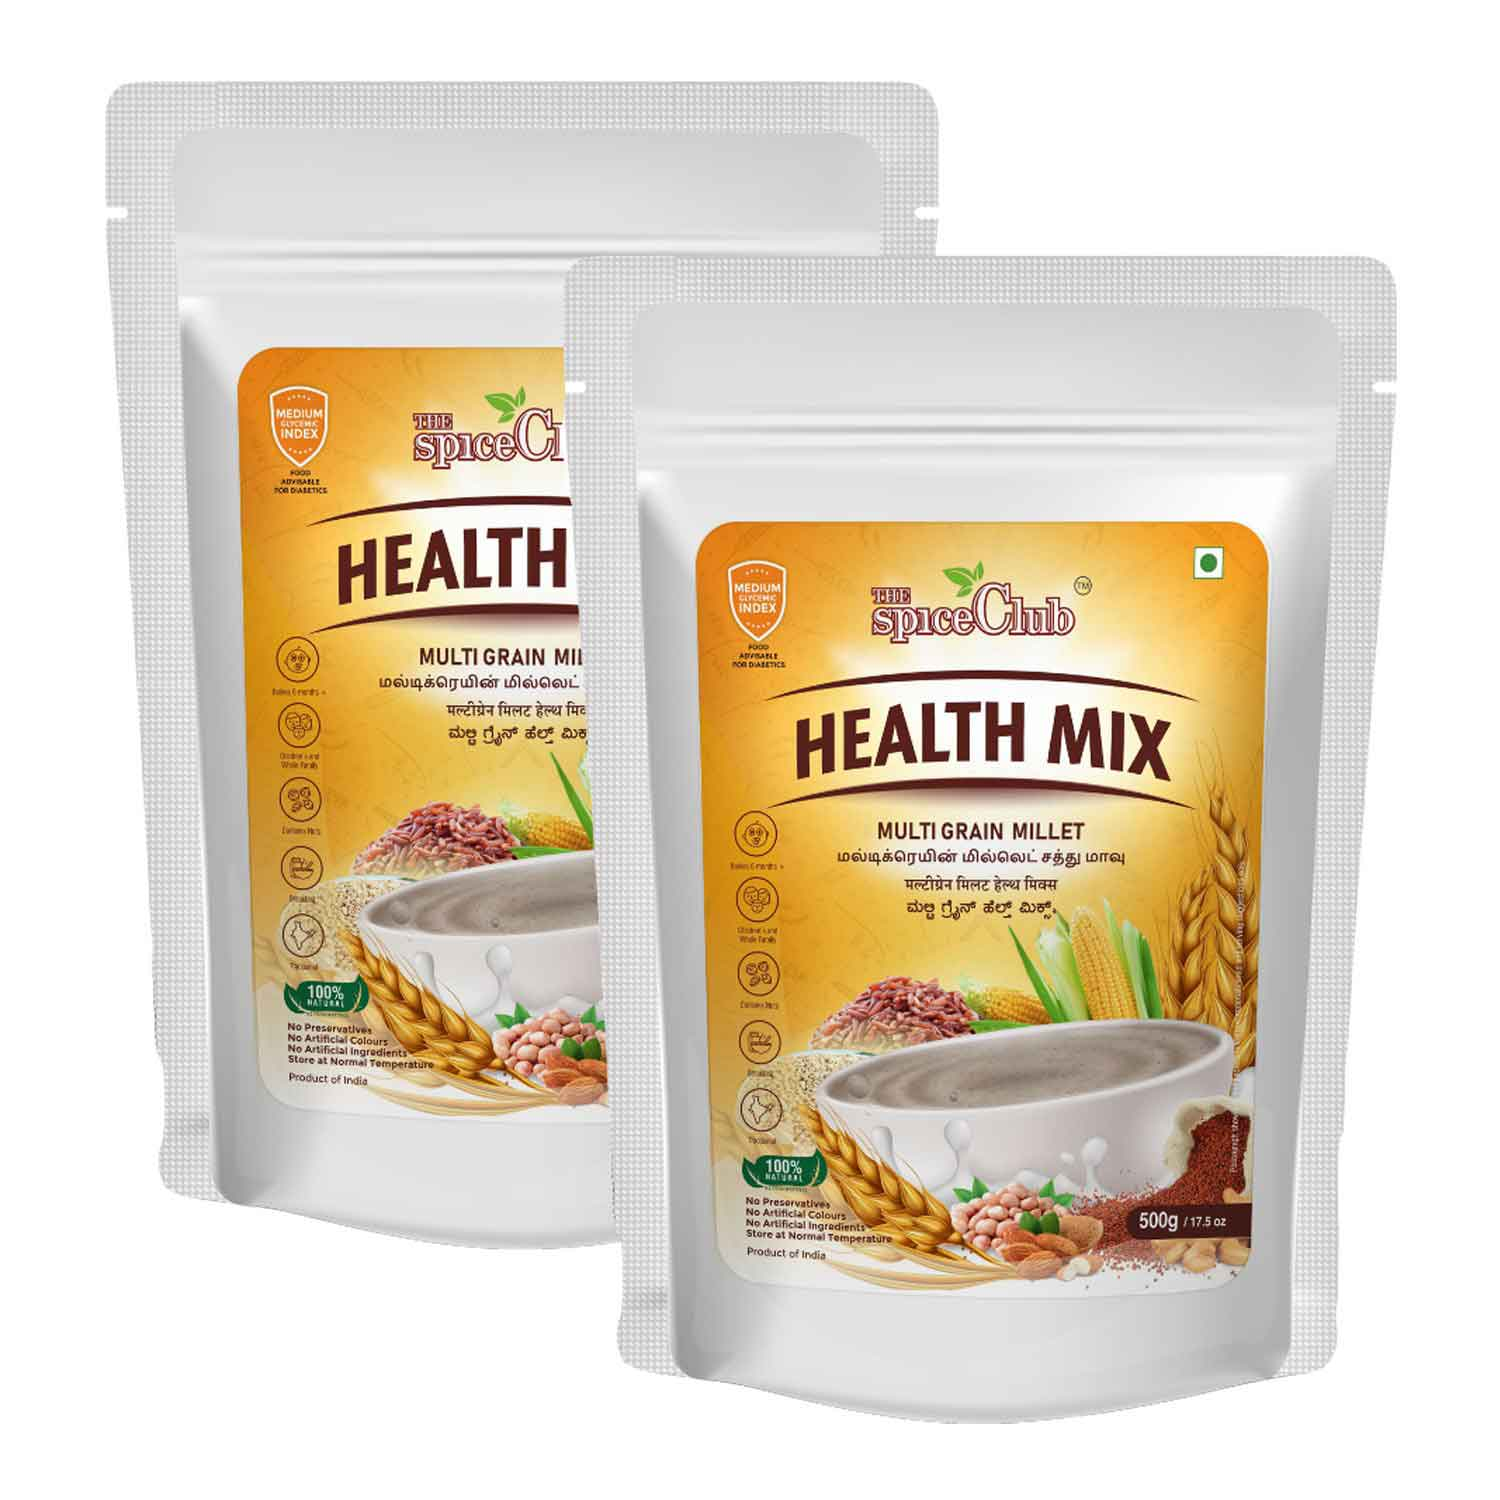 Multi Grain Millet Health Mix 500gm - pack of 2 (100% Natural, No Preservatives, No Artificial Colors)